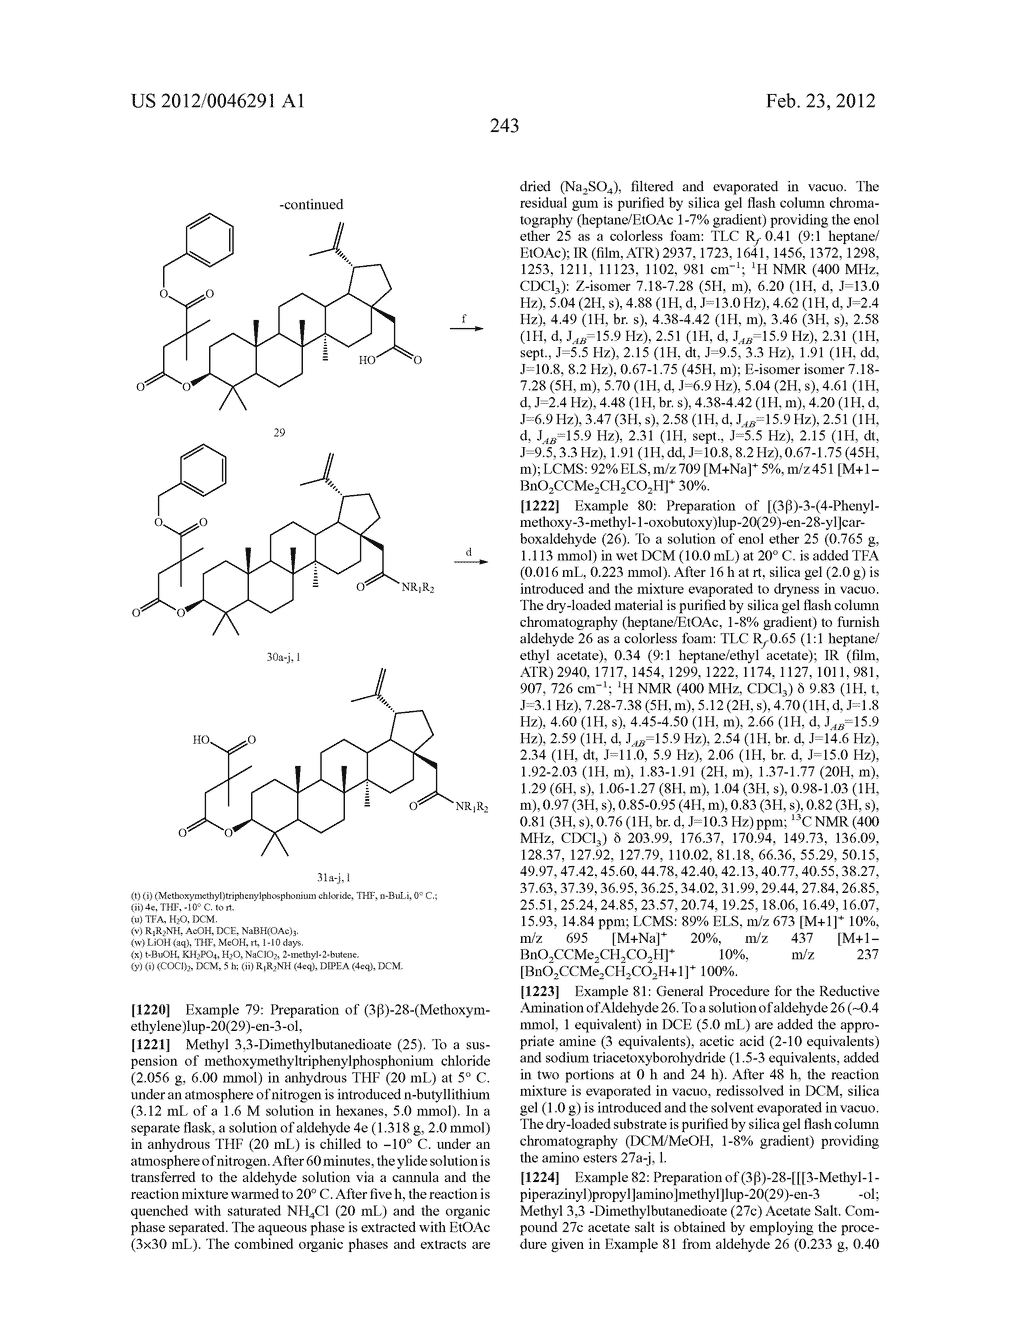 Extended Triterpene Derivatives - diagram, schematic, and image 243